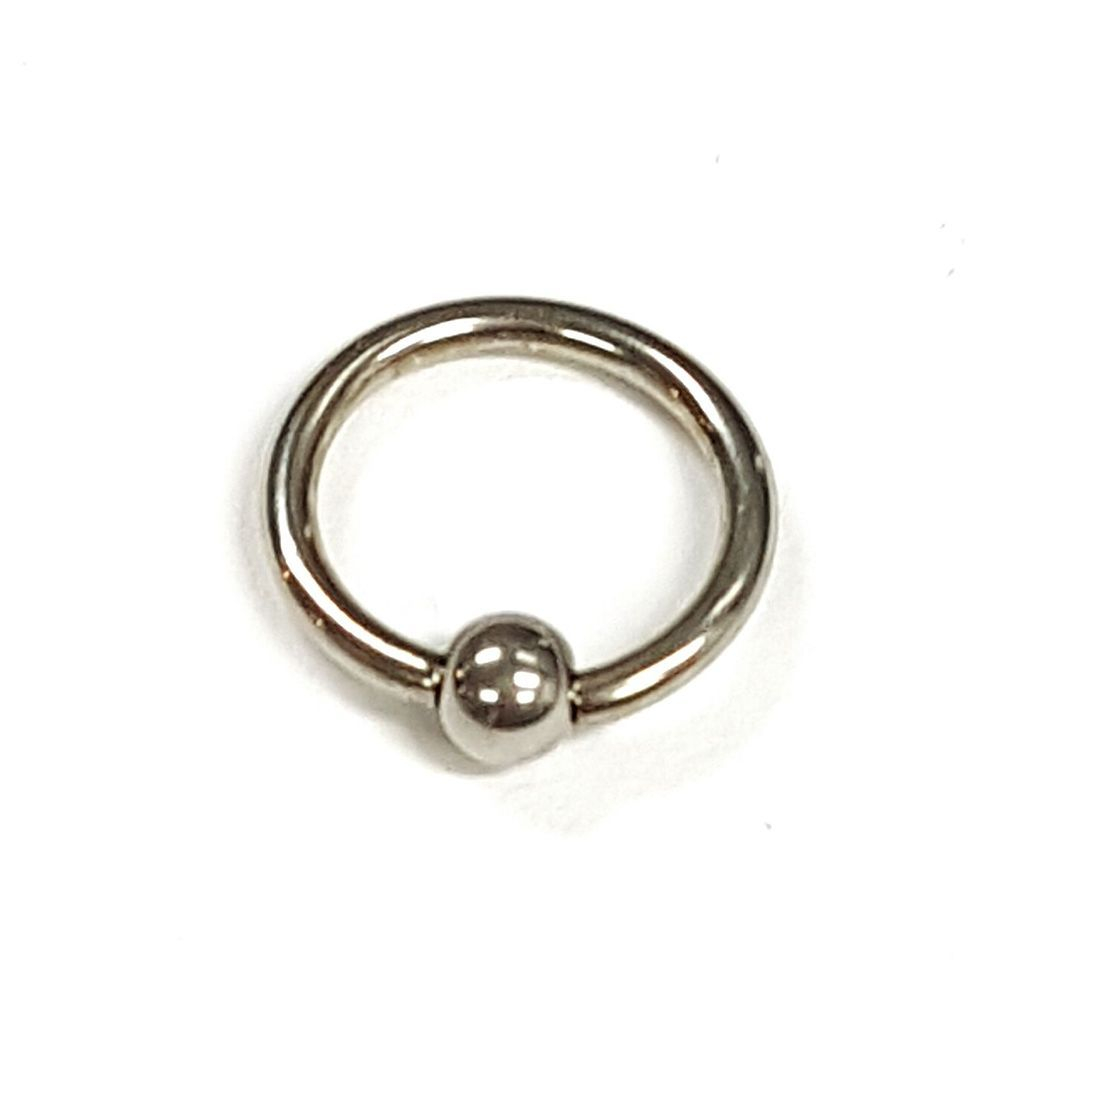 1.2mm x 8mm Silver Ball Closure Ring    available at Kazbah online and our Leicester City Centre Shop